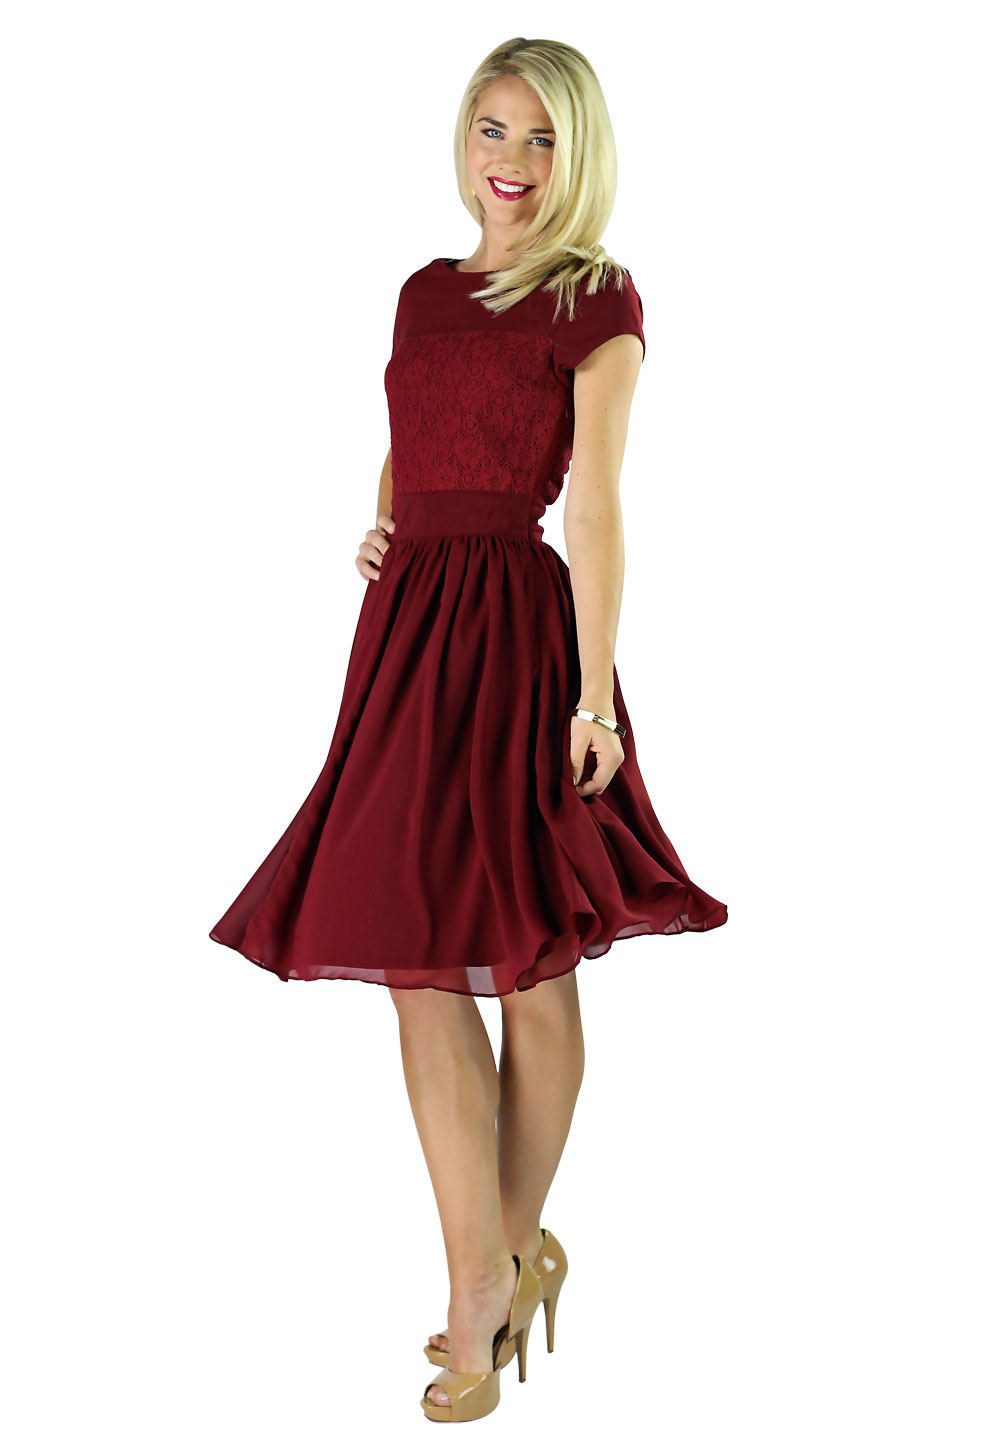 Modest Dresses in Red